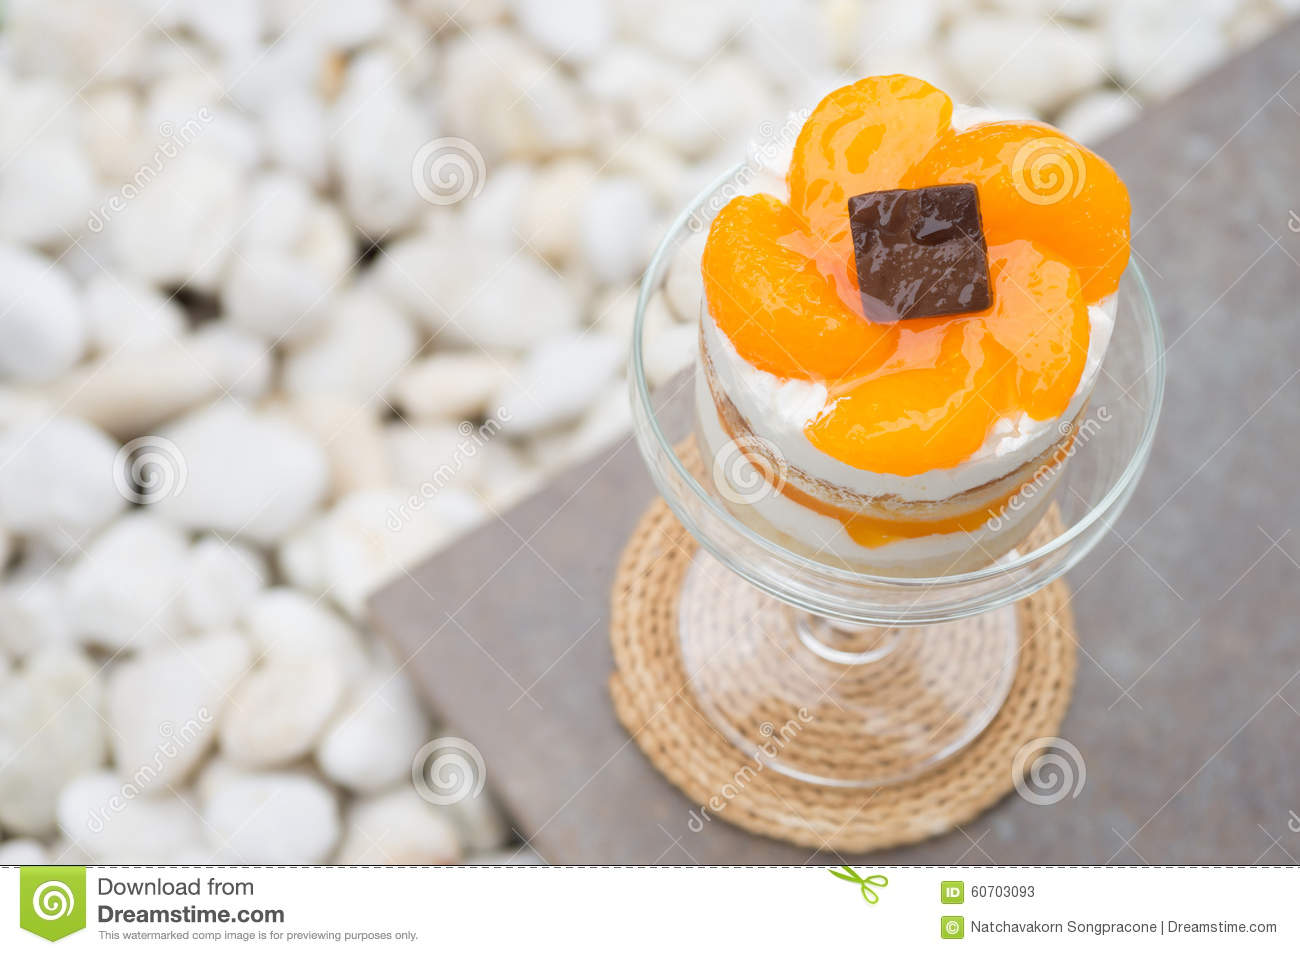 Orange Cake In Champagne Coupe Glass Stock Image - Image of